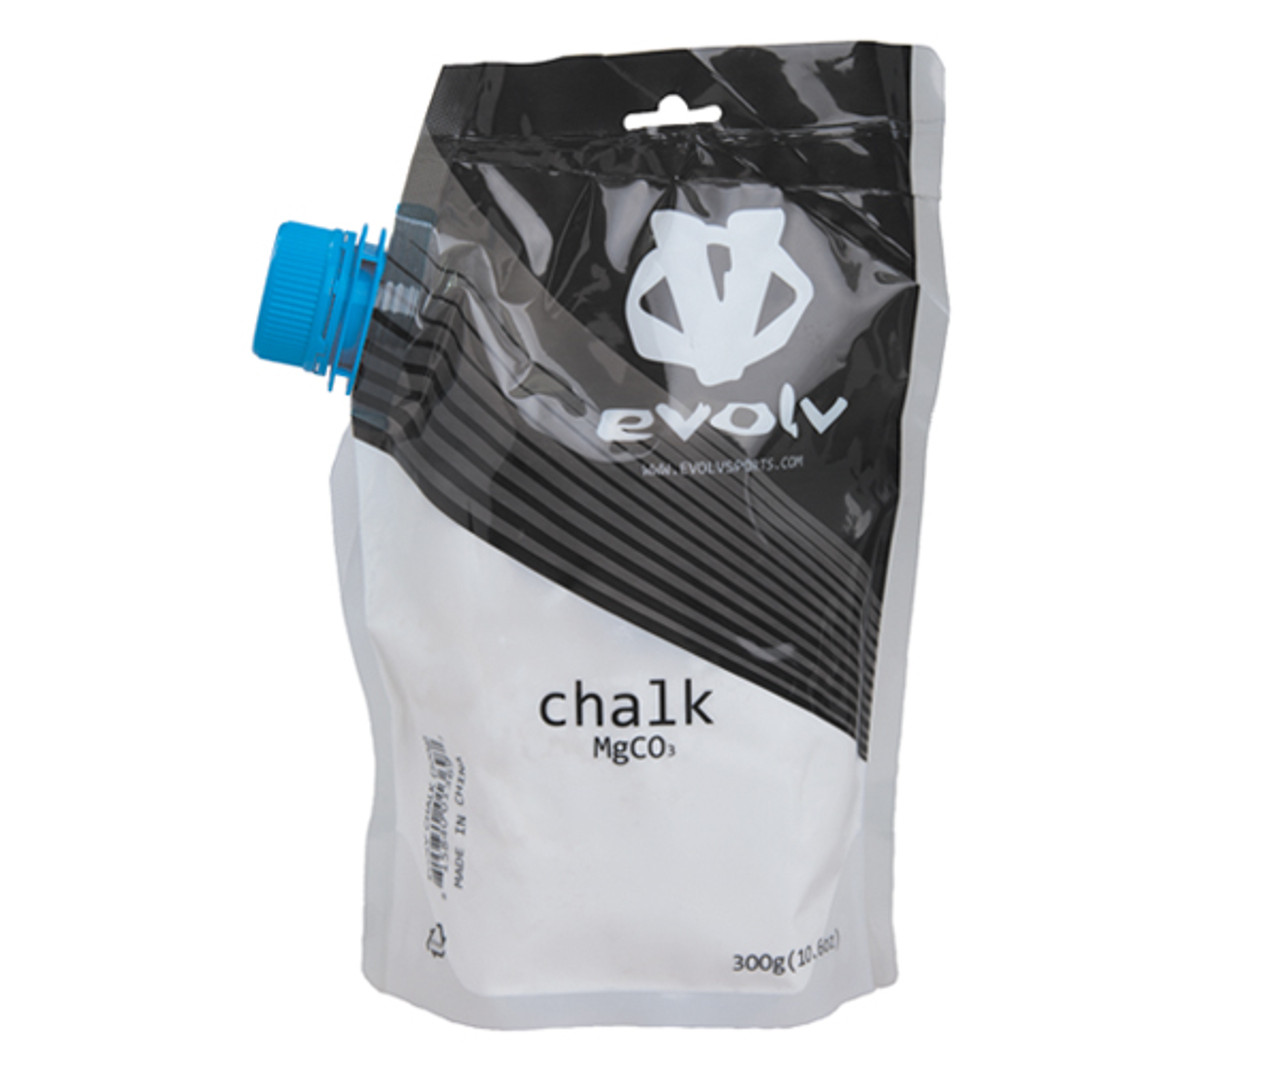 Evolv Chalk